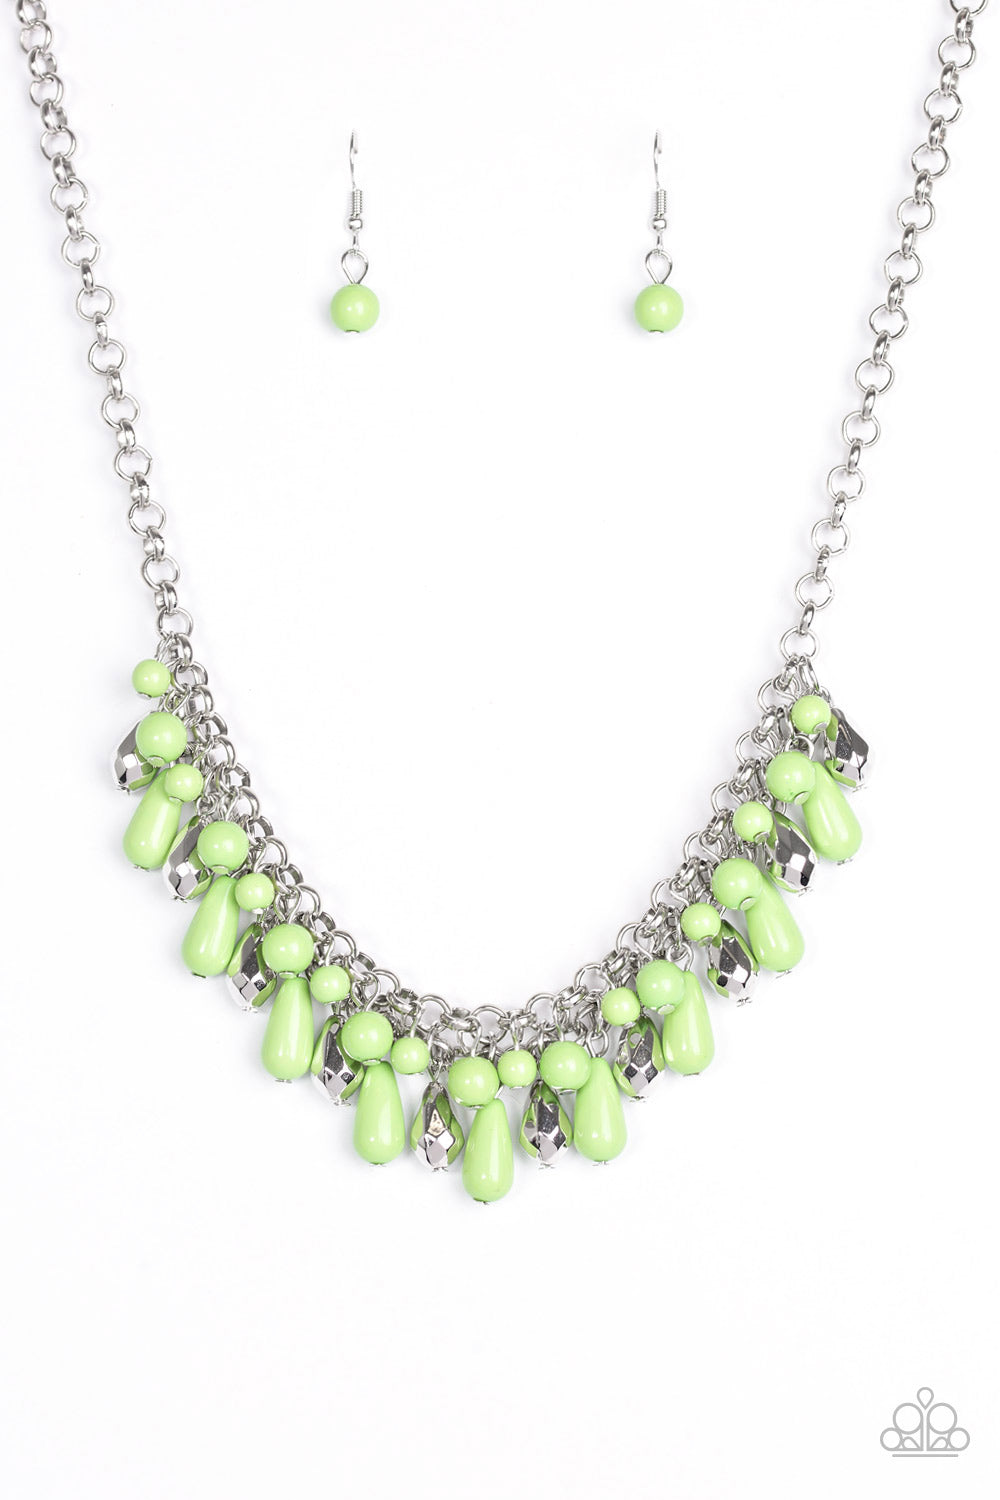 Paparazzi Necklace - Coastal Cabanas - Green